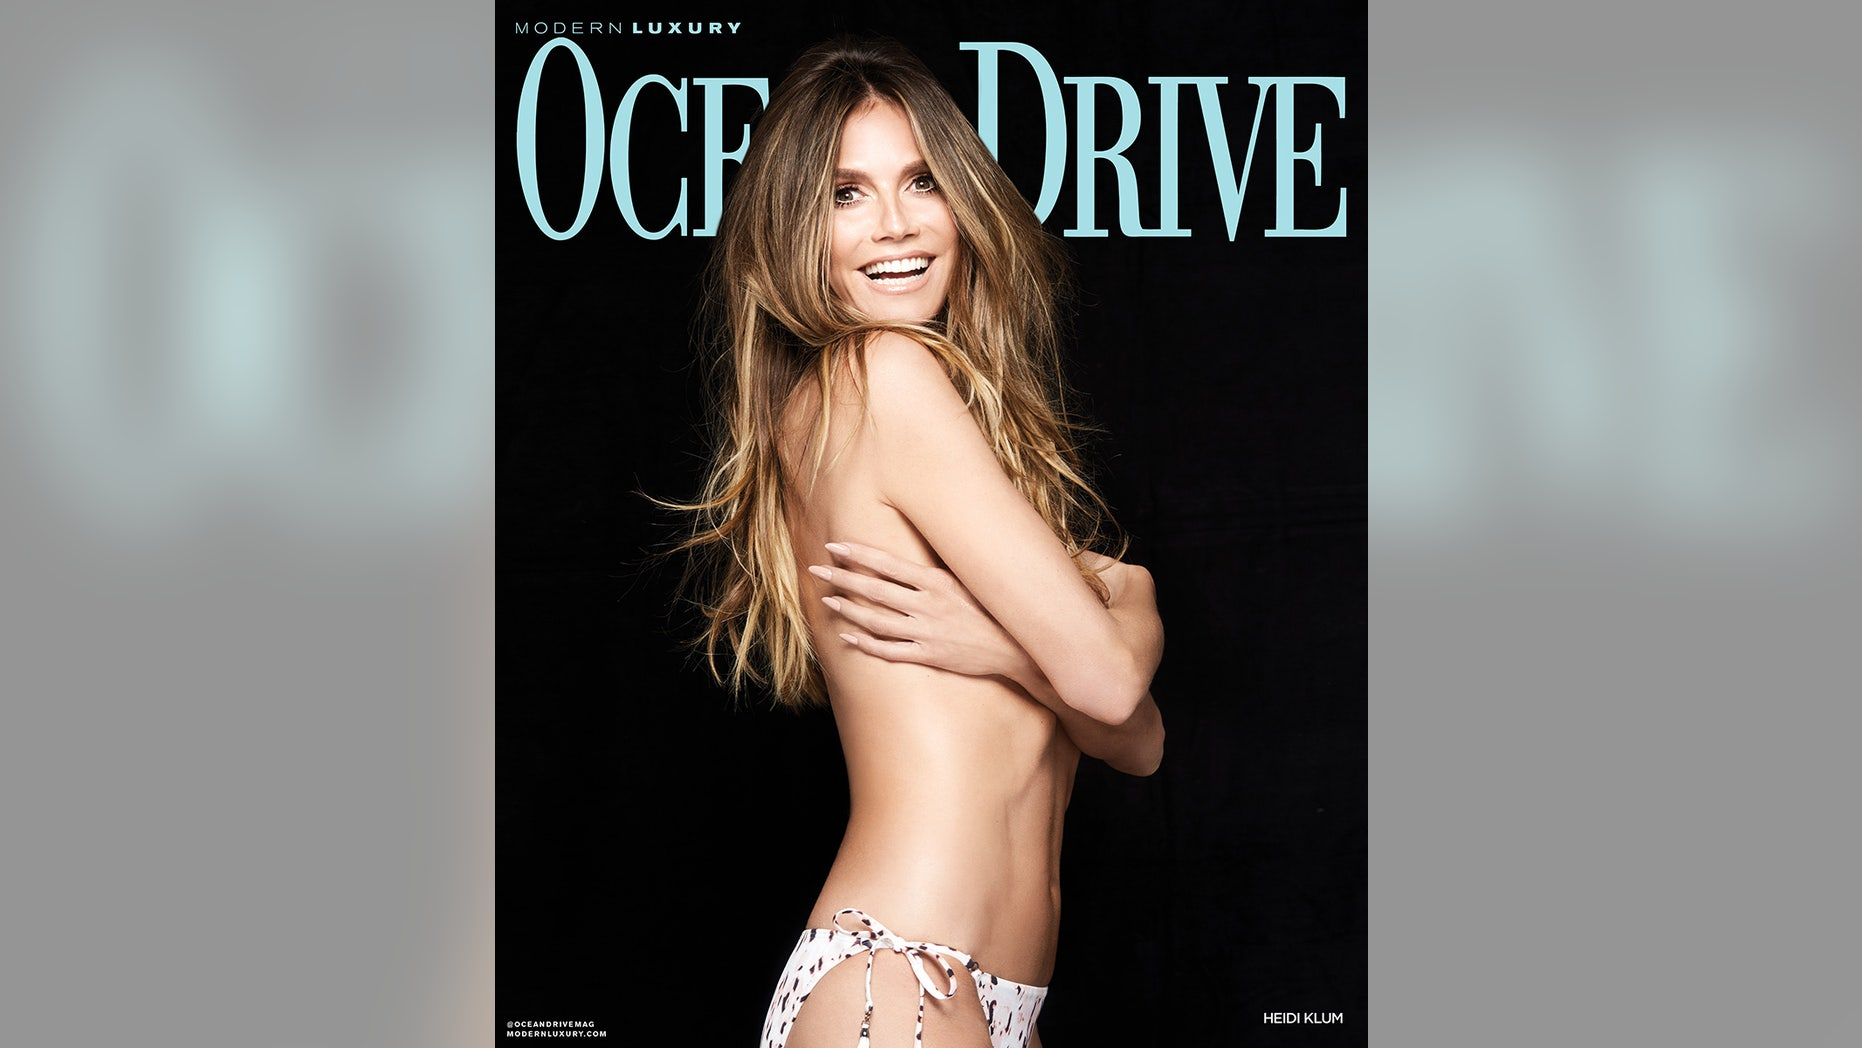 Heidi Klum posed topless for Ocean Drive.